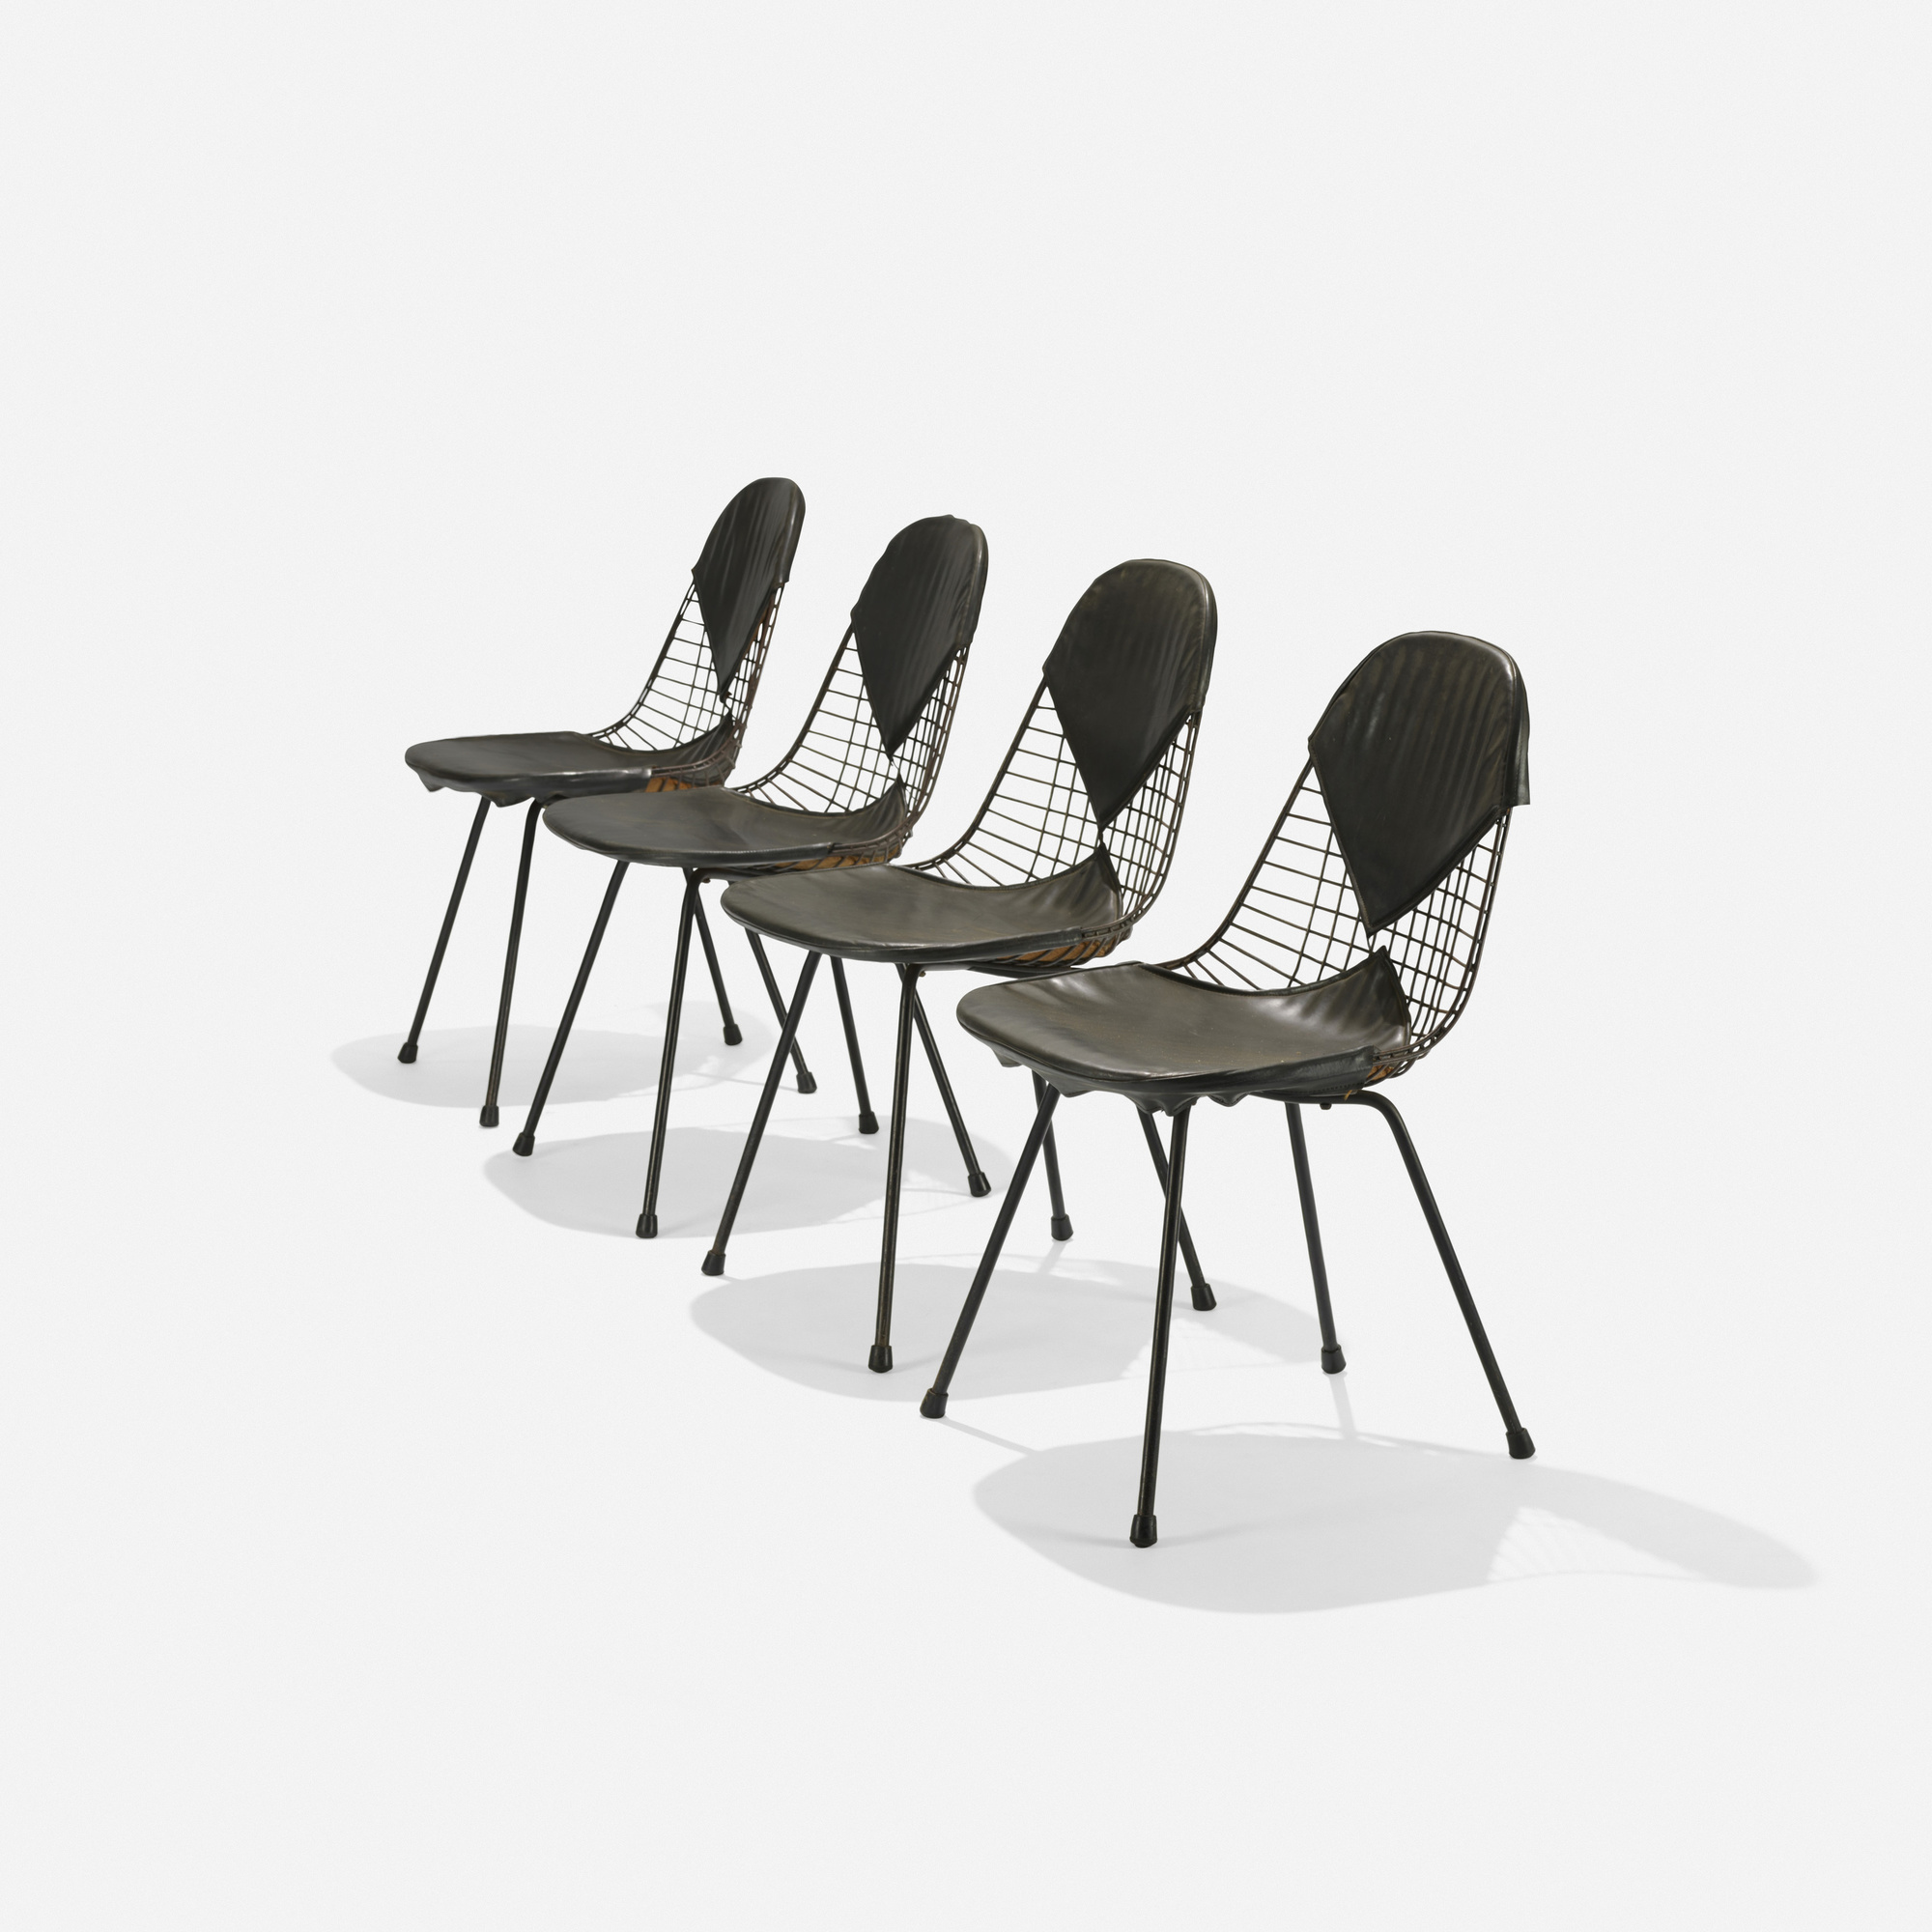 180: Charles and Ray Eames / early DKRs, set of four (1 of 4)